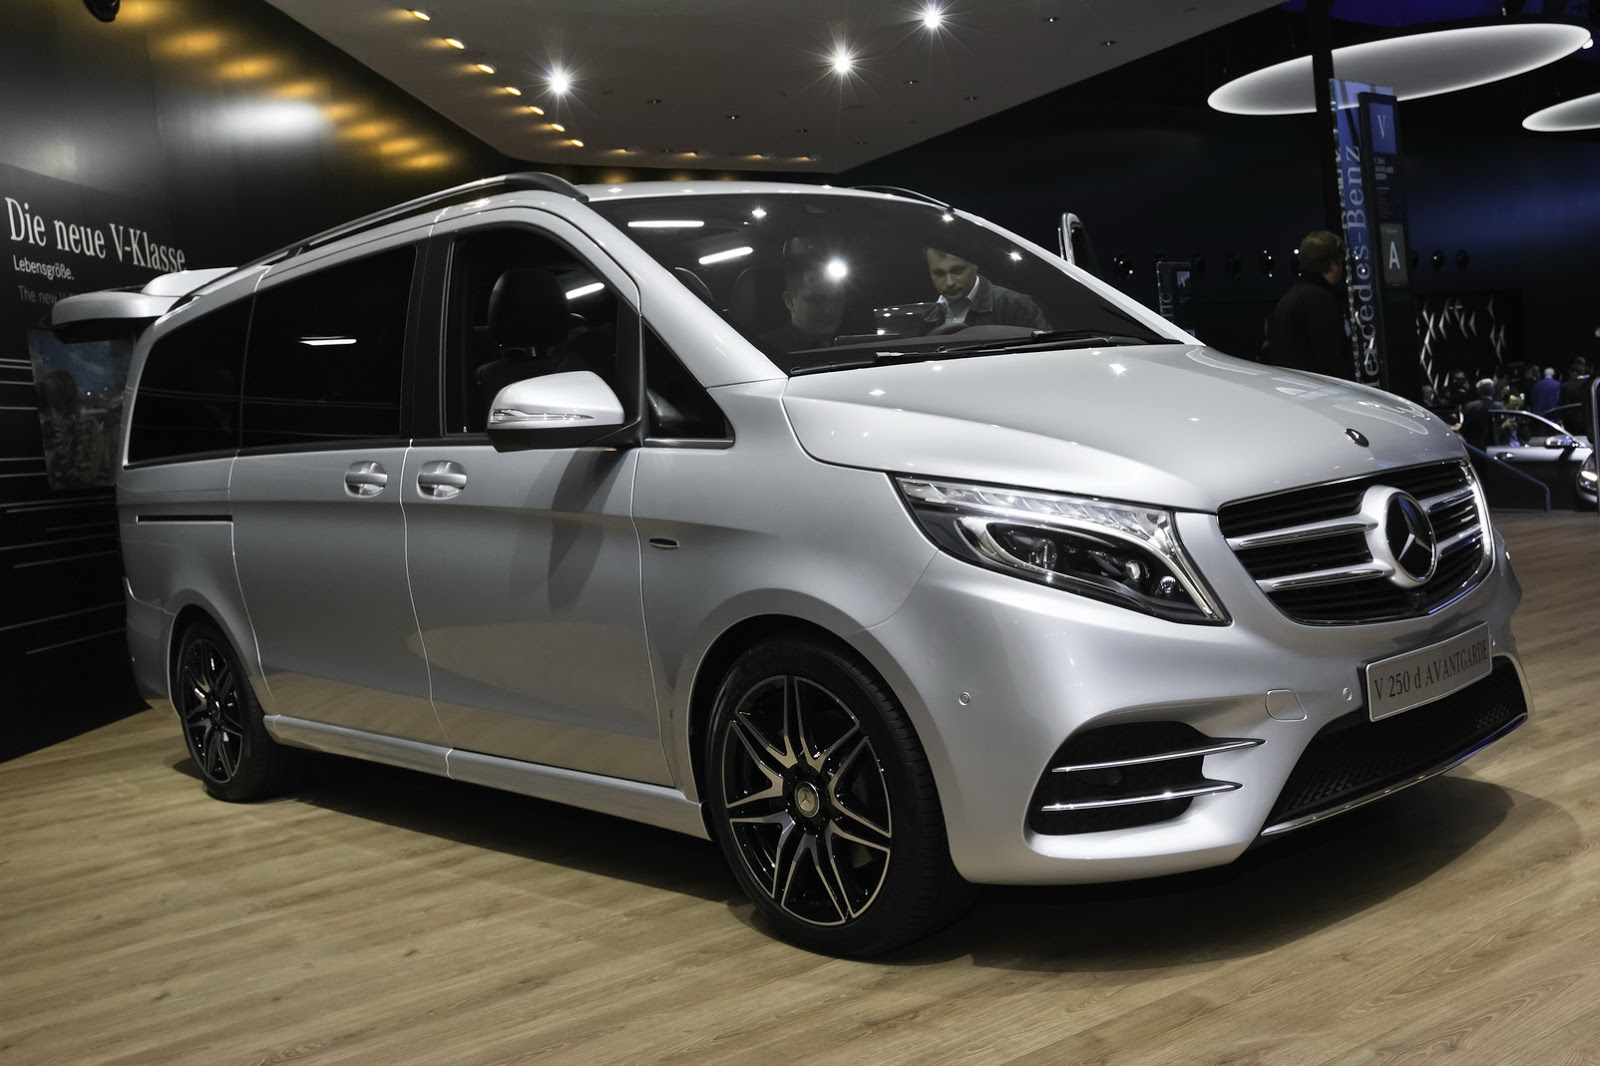 Mercedes Classe V Amg : new mercedes benz v class takes some amg fashion lessons ~ Gottalentnigeria.com Avis de Voitures